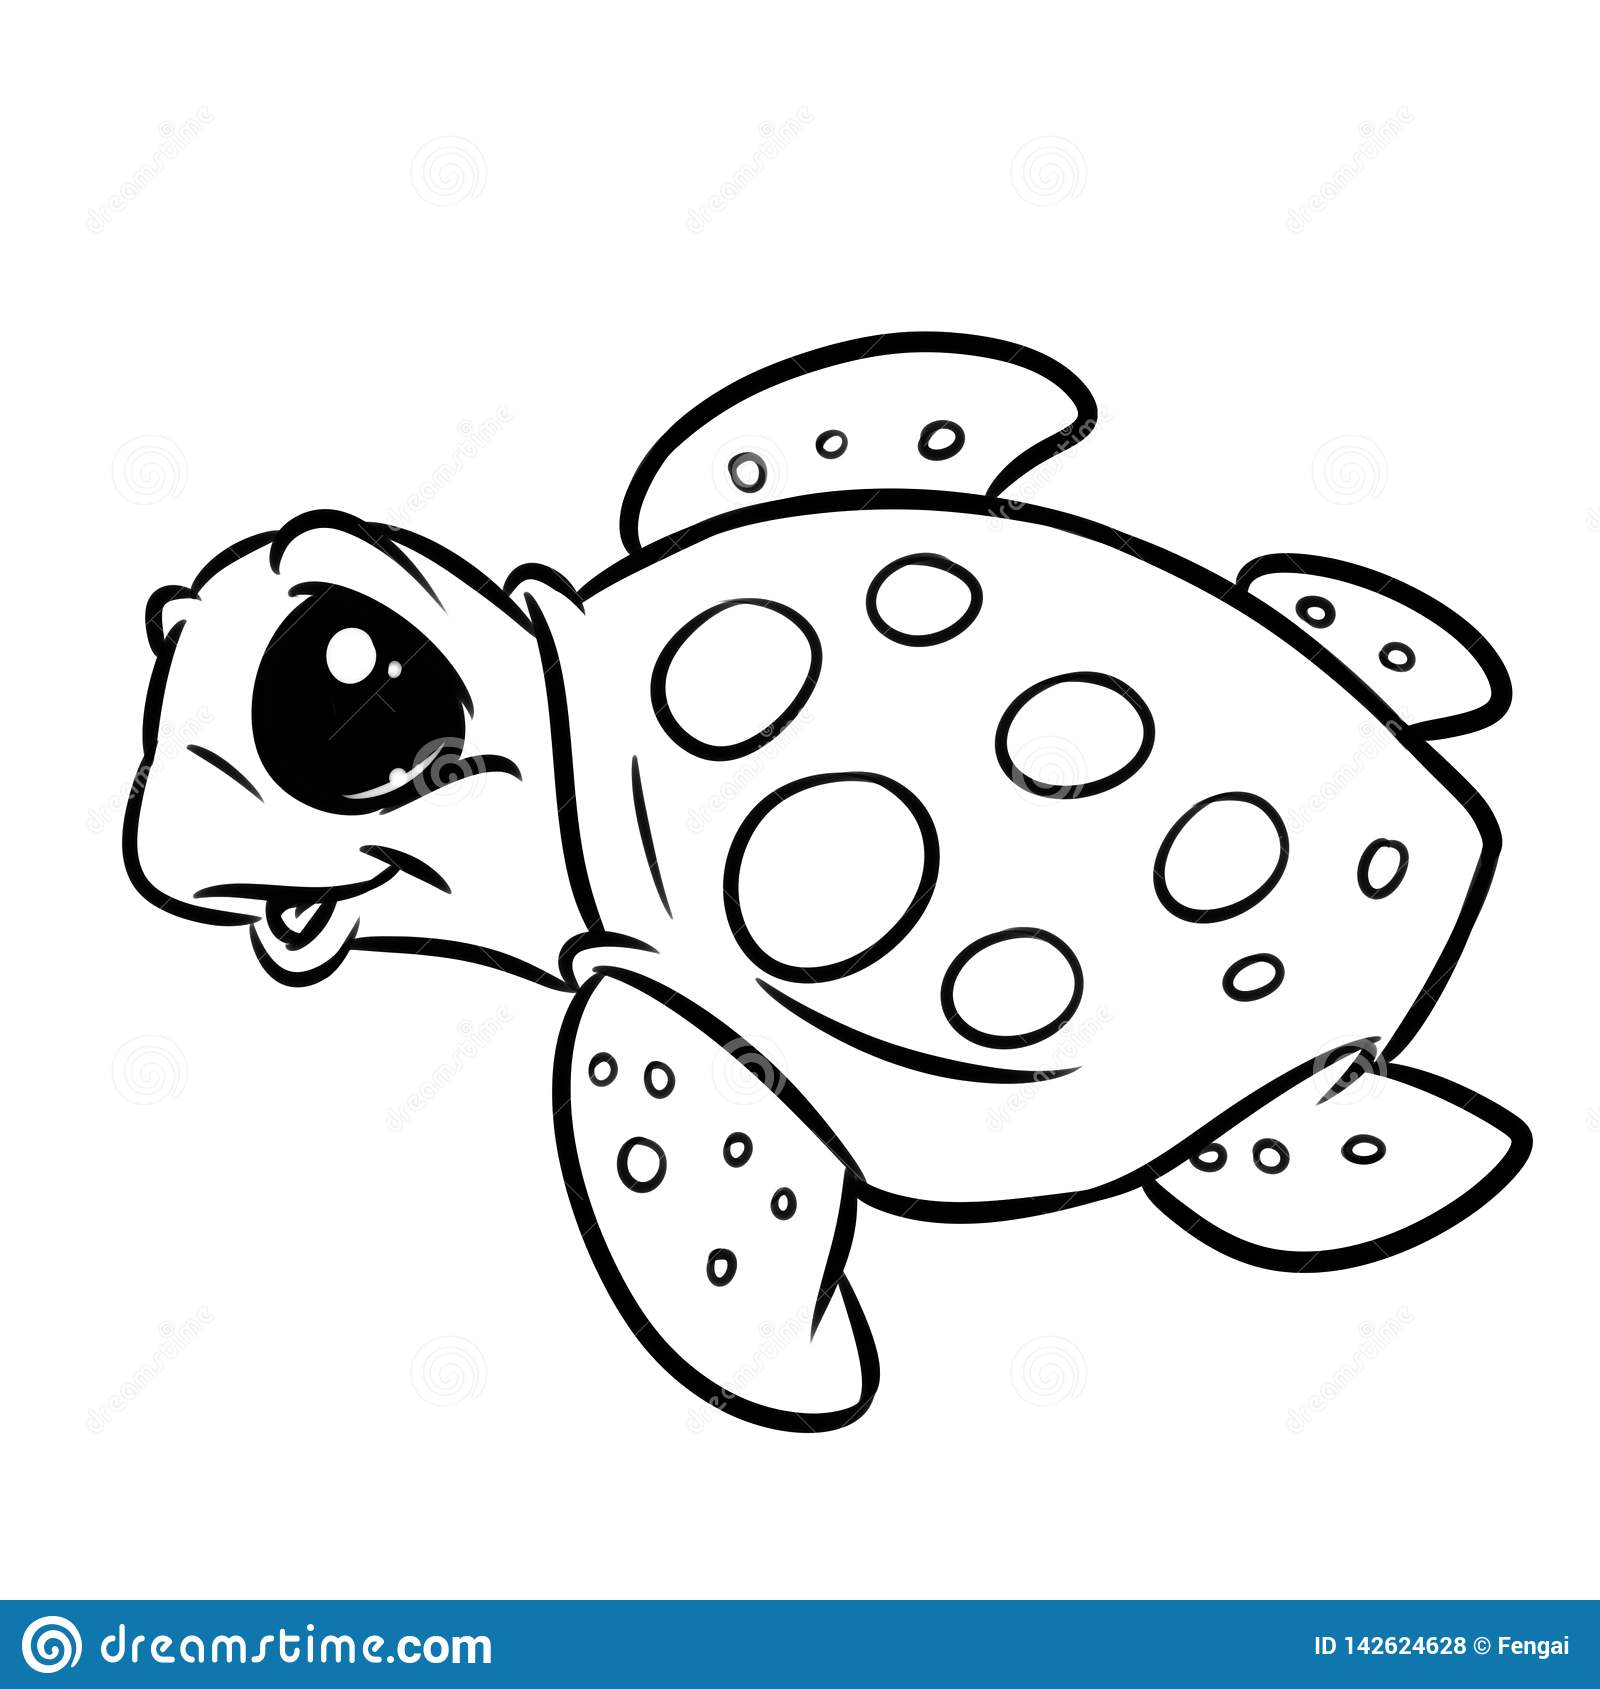 Disney Coloring Pages - Bing Images | Disney coloring pages ... | 1689x1600